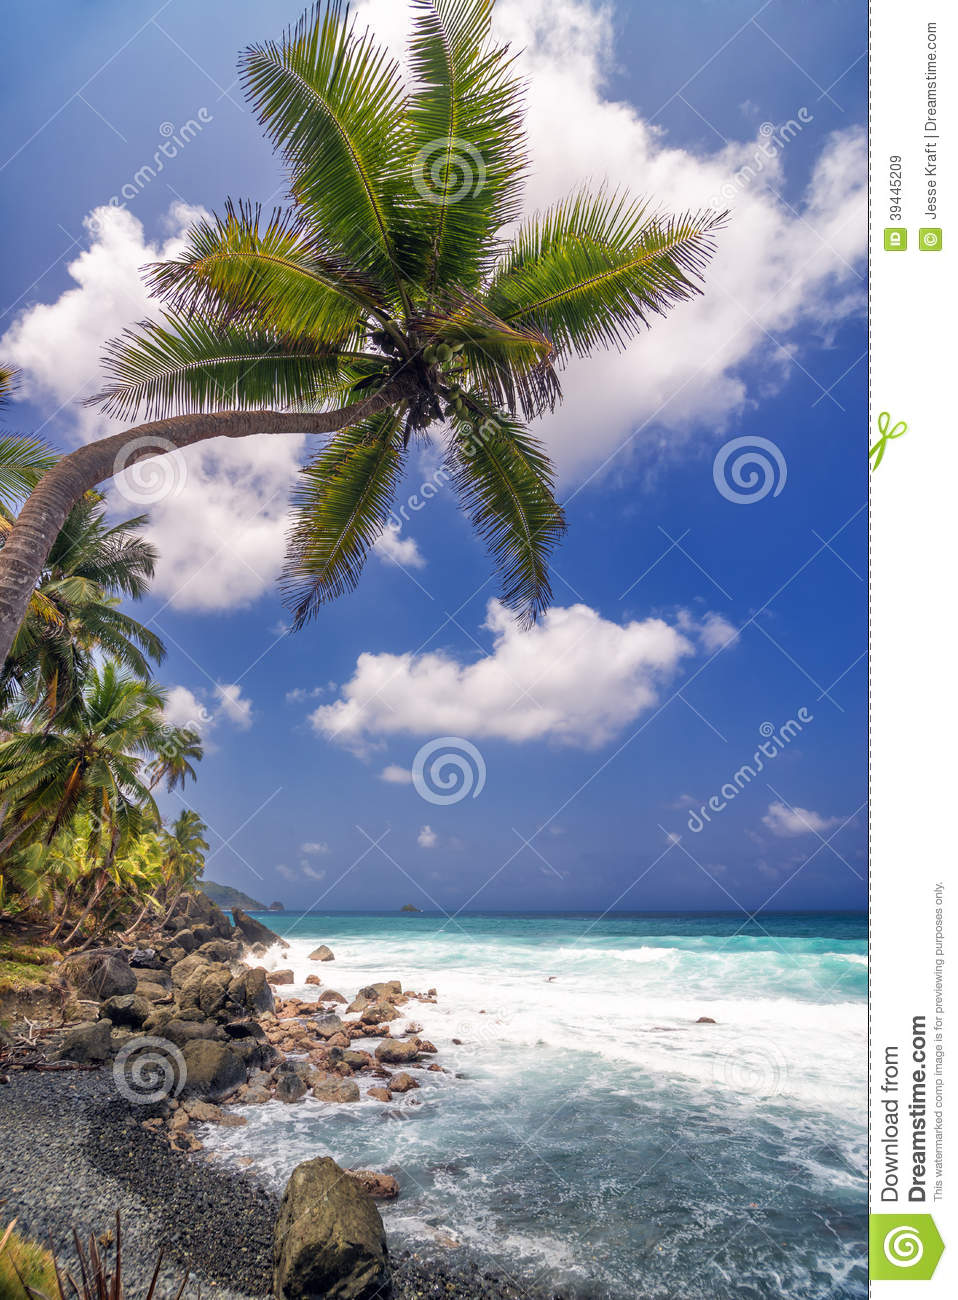 Single palm tree pictures - stress free holiday entertaining images